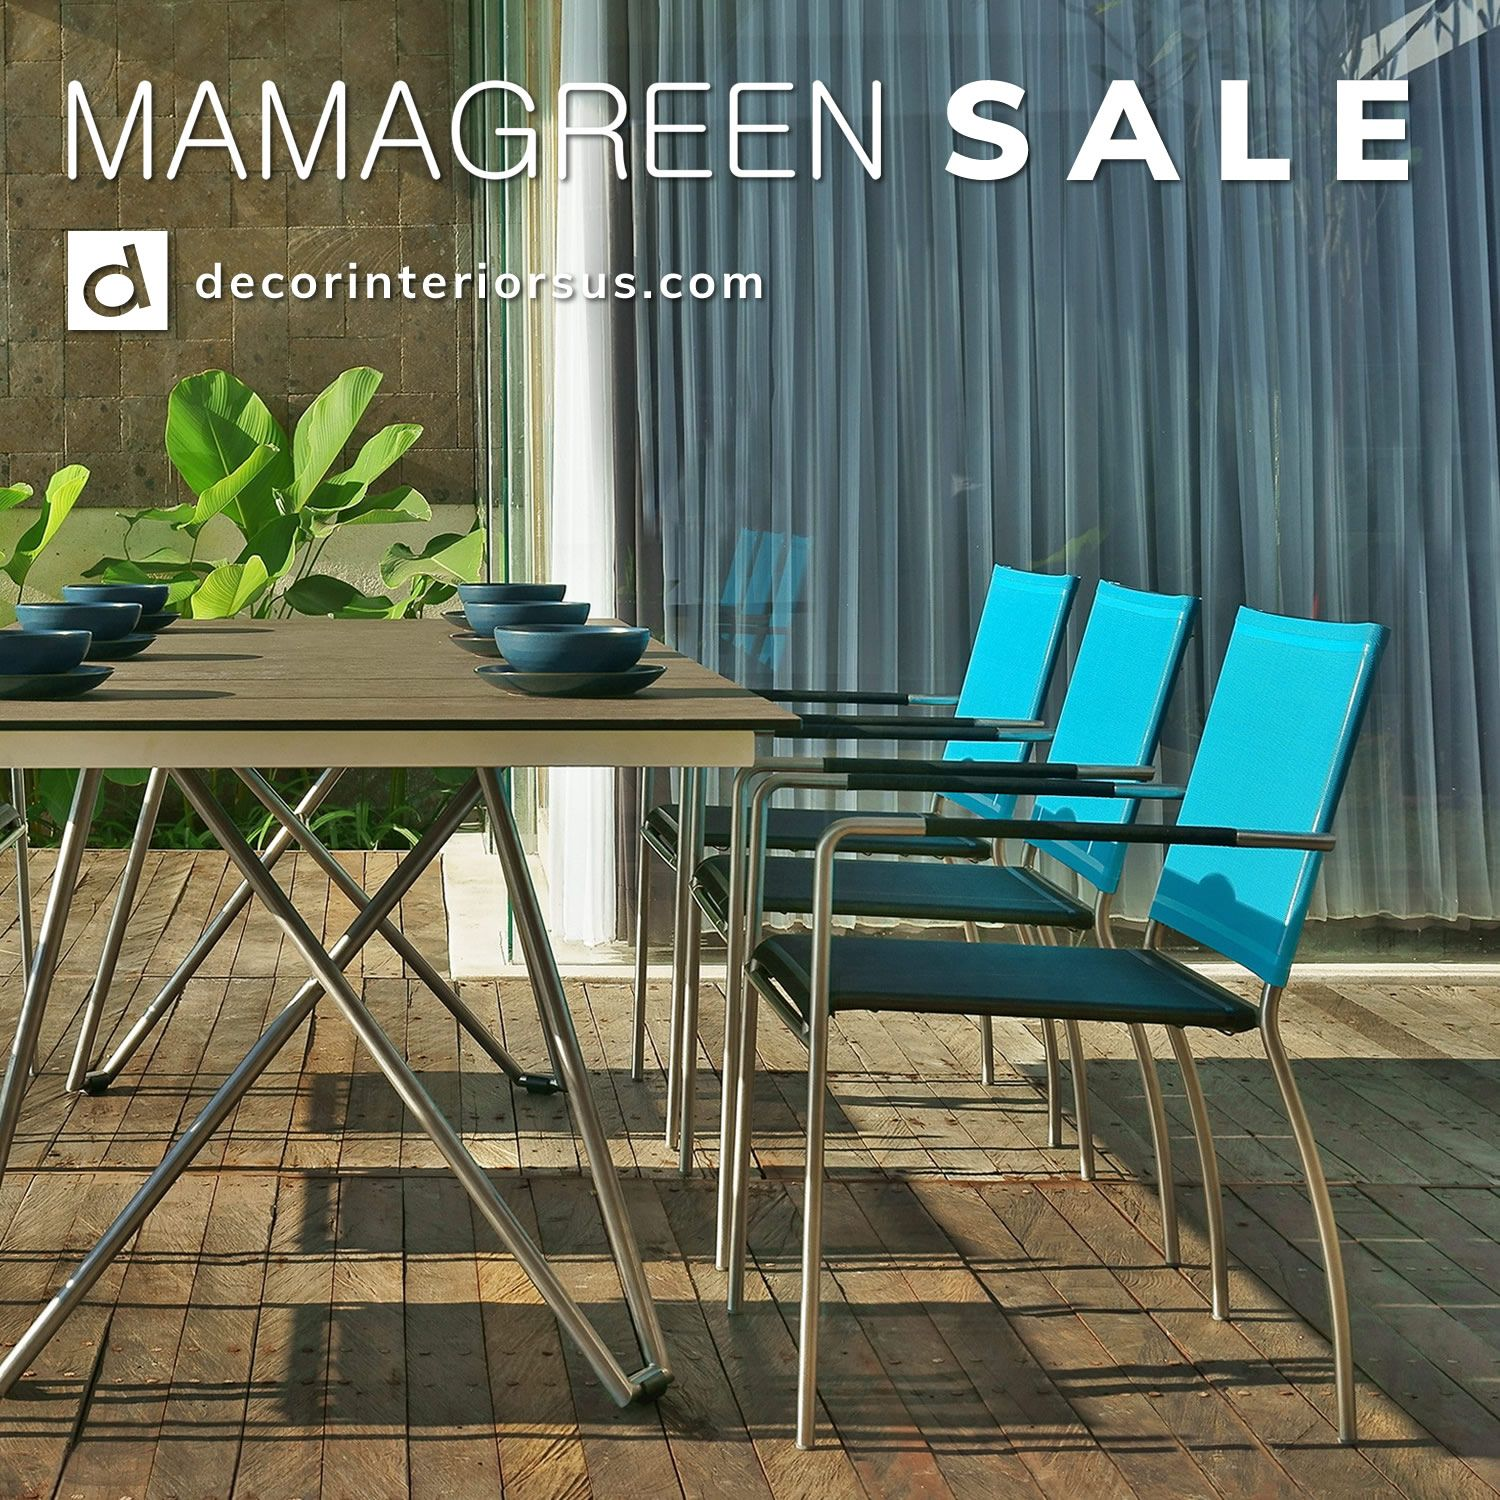 Save 15 On Mamagreen Modern Outdoor Furniture